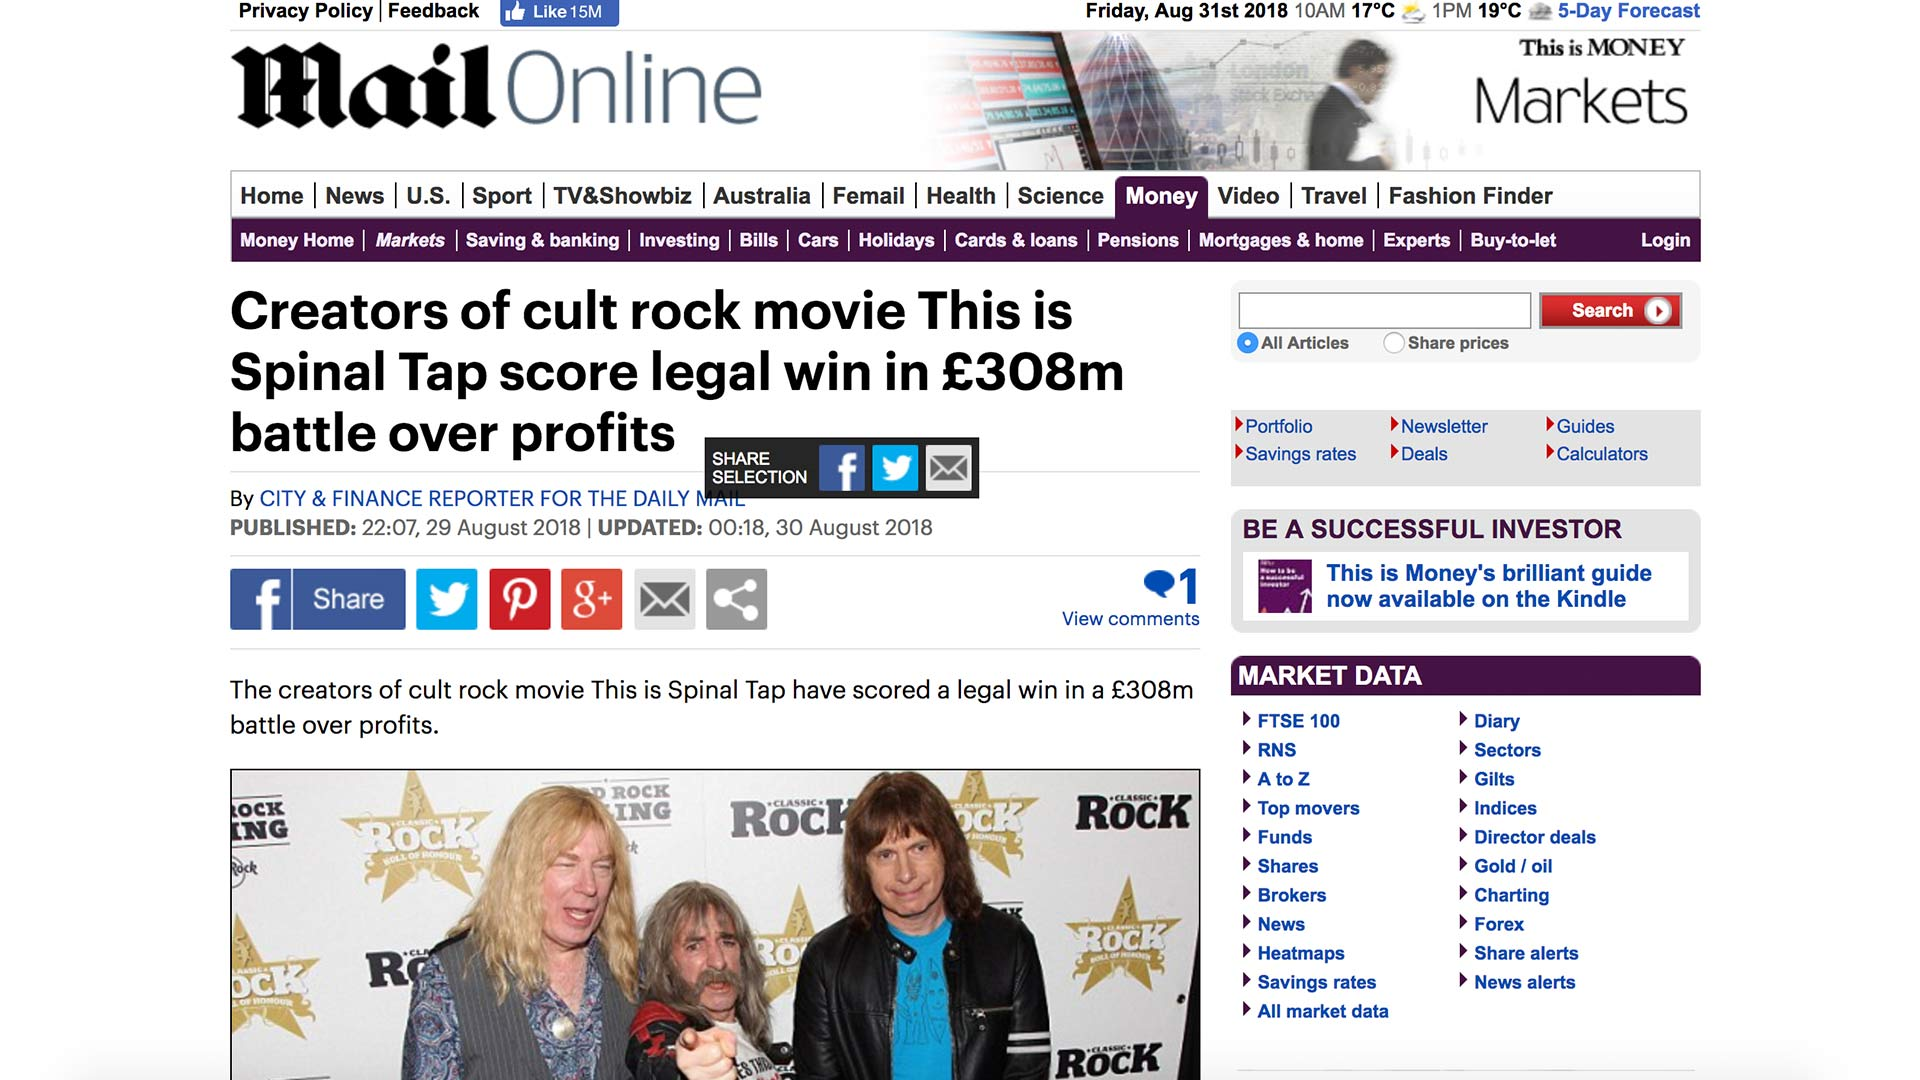 Fairness Rocks News Creators of cult rock movie This is Spinal Tap score legal win in £308m battle over profits